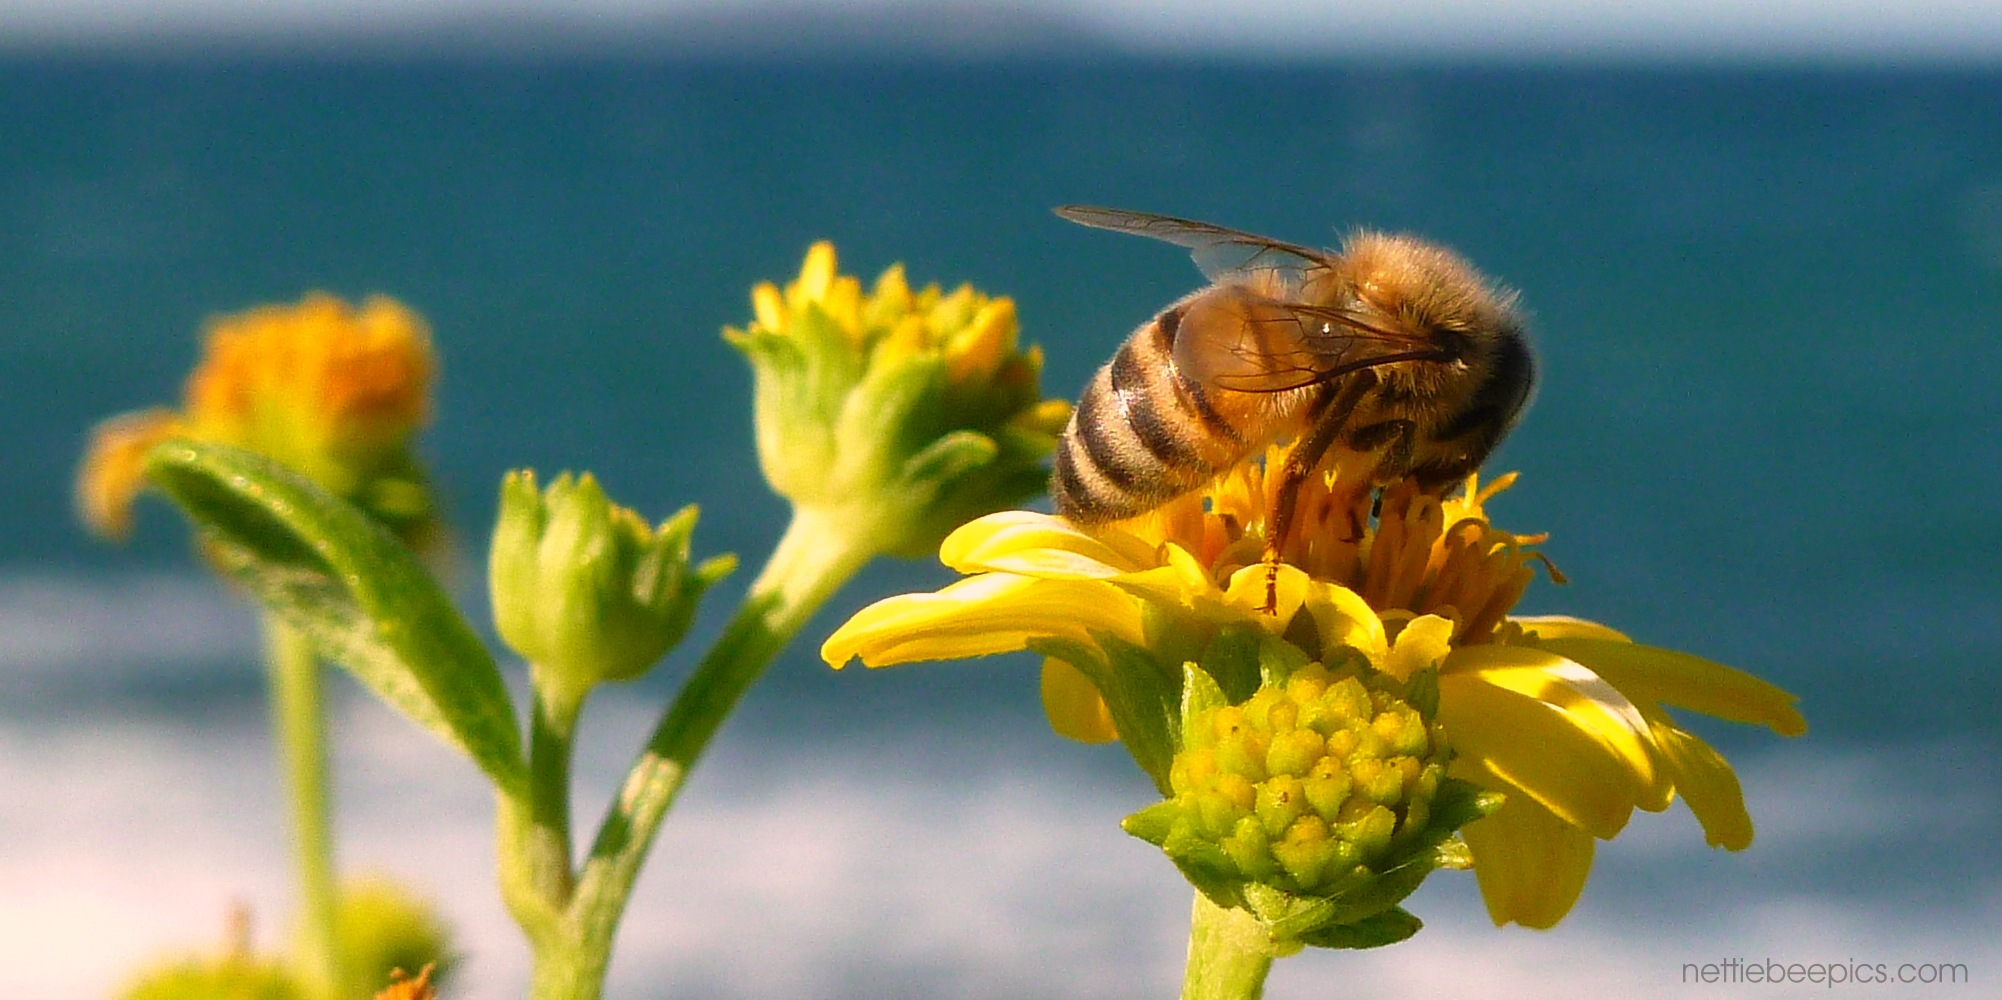 Honey Bee at the Beach Cover Photo by Nettie Bee